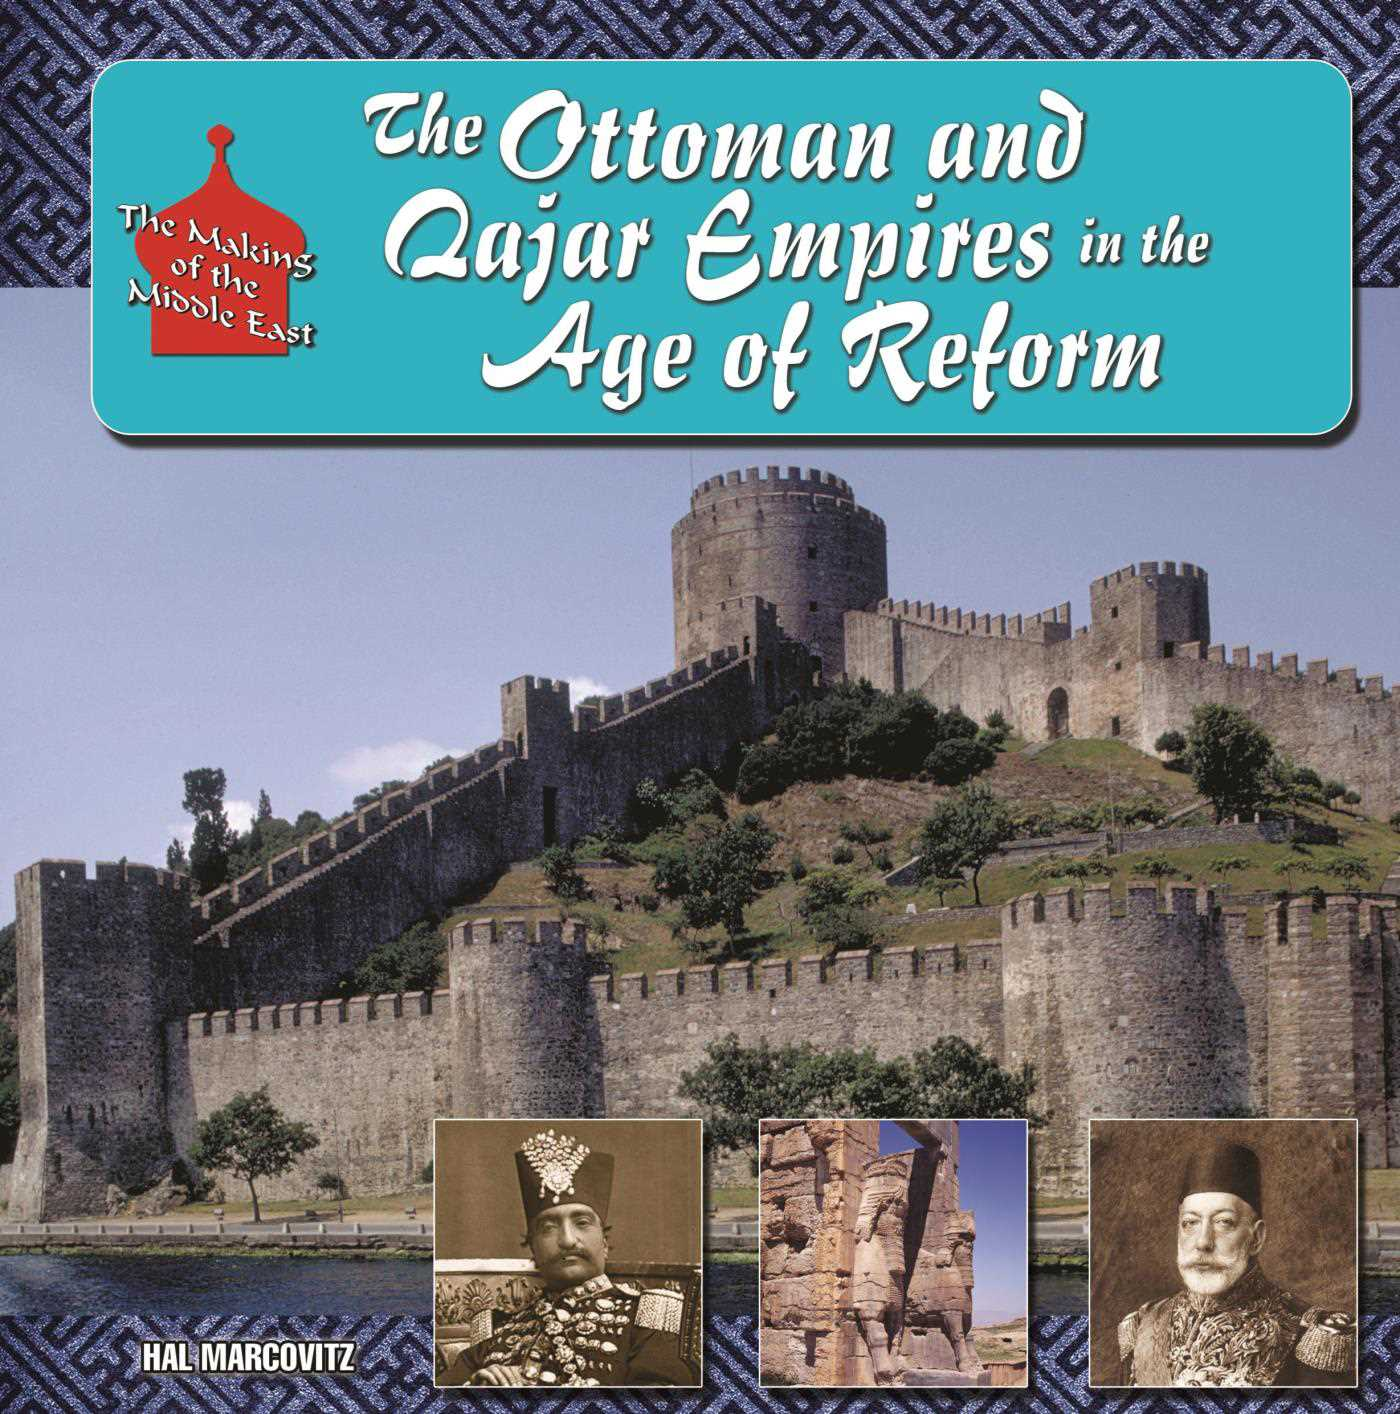 egypts age of reform Introduction although egypt's influence on european history dates back more than 5000 years, at the beginning of the 19th century, it was still a mysterious and relatively unknown place to europeans.